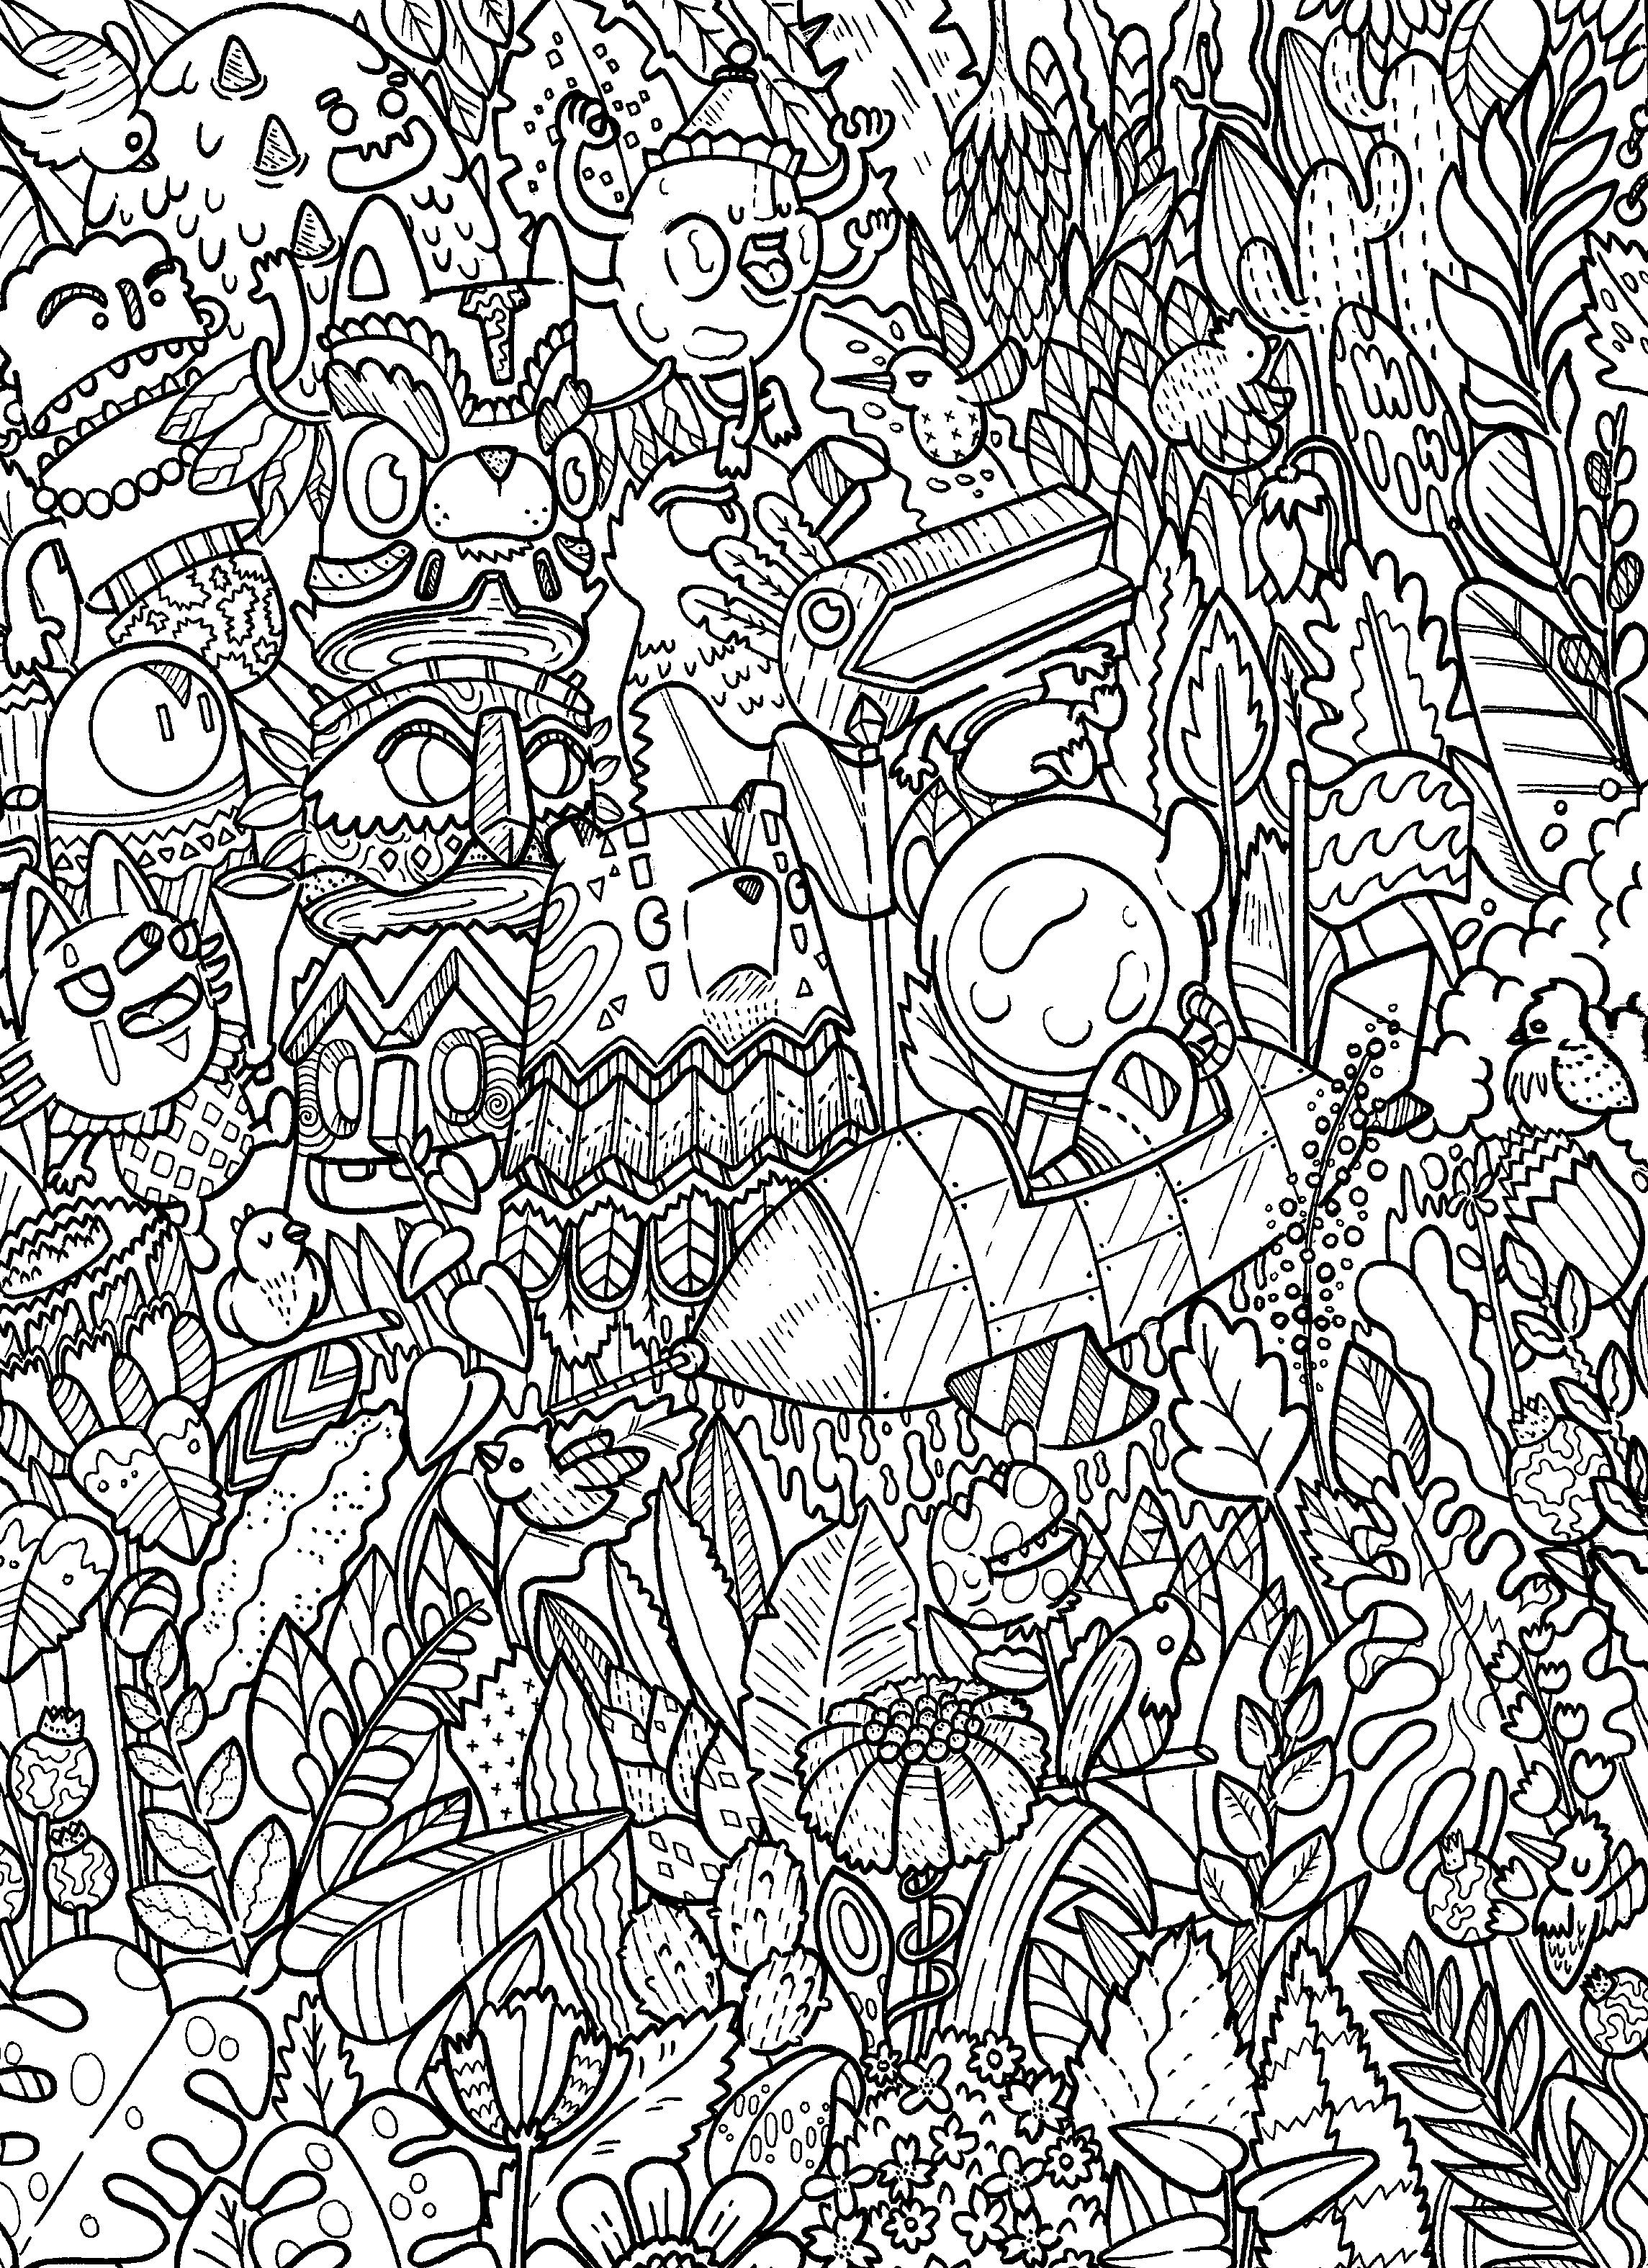 Outer Space Coloring Pages For Adults  doodle coloring book